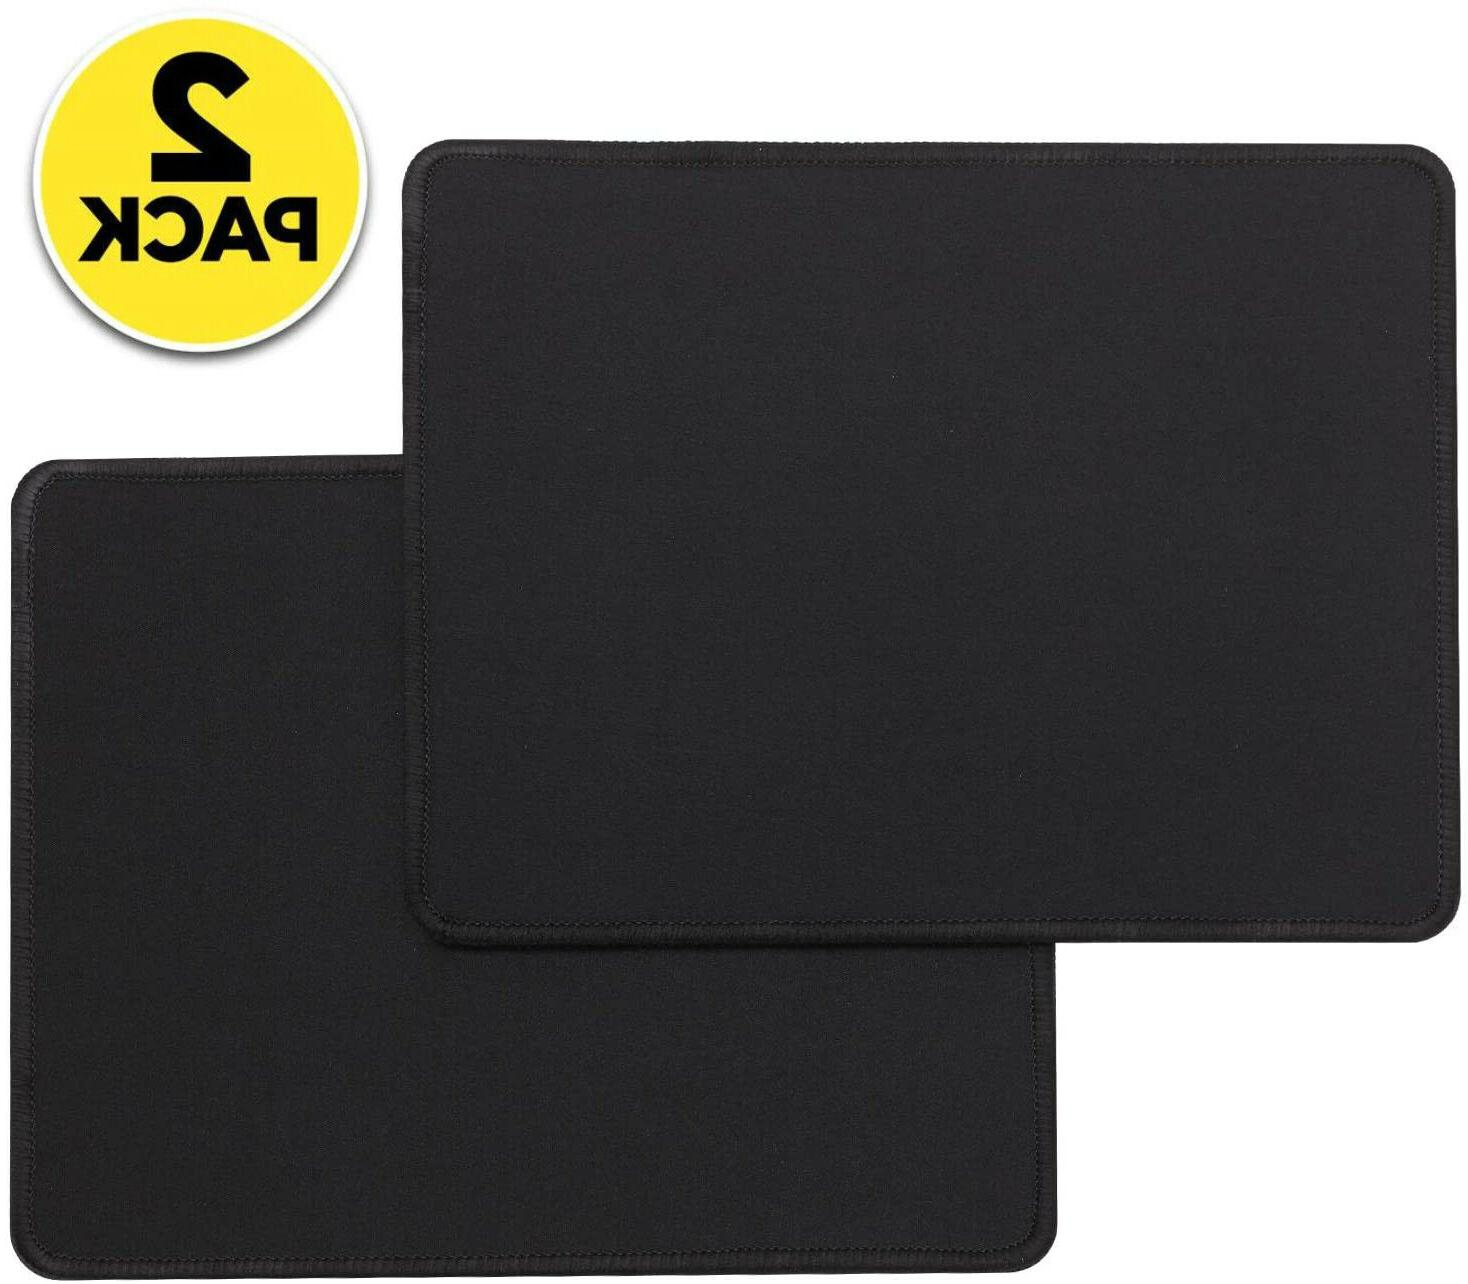 2 pack mouse pad mat stitched edge